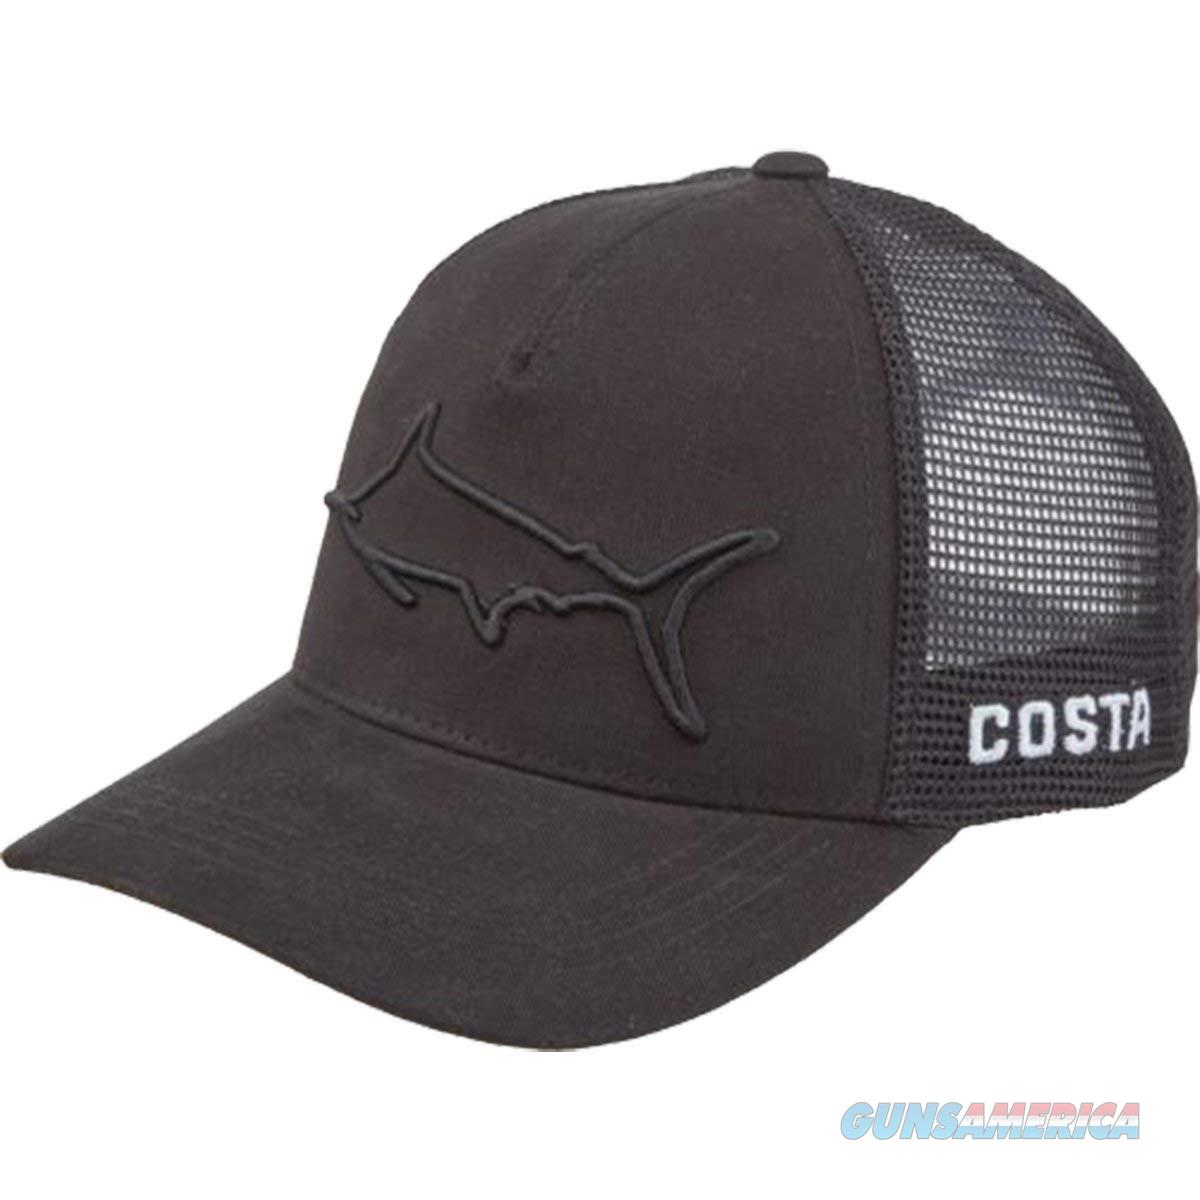 Costa Stealth Marlin Trucker Hat Black  Non-Guns > Hunting Clothing and Equipment > Clothing > Hats